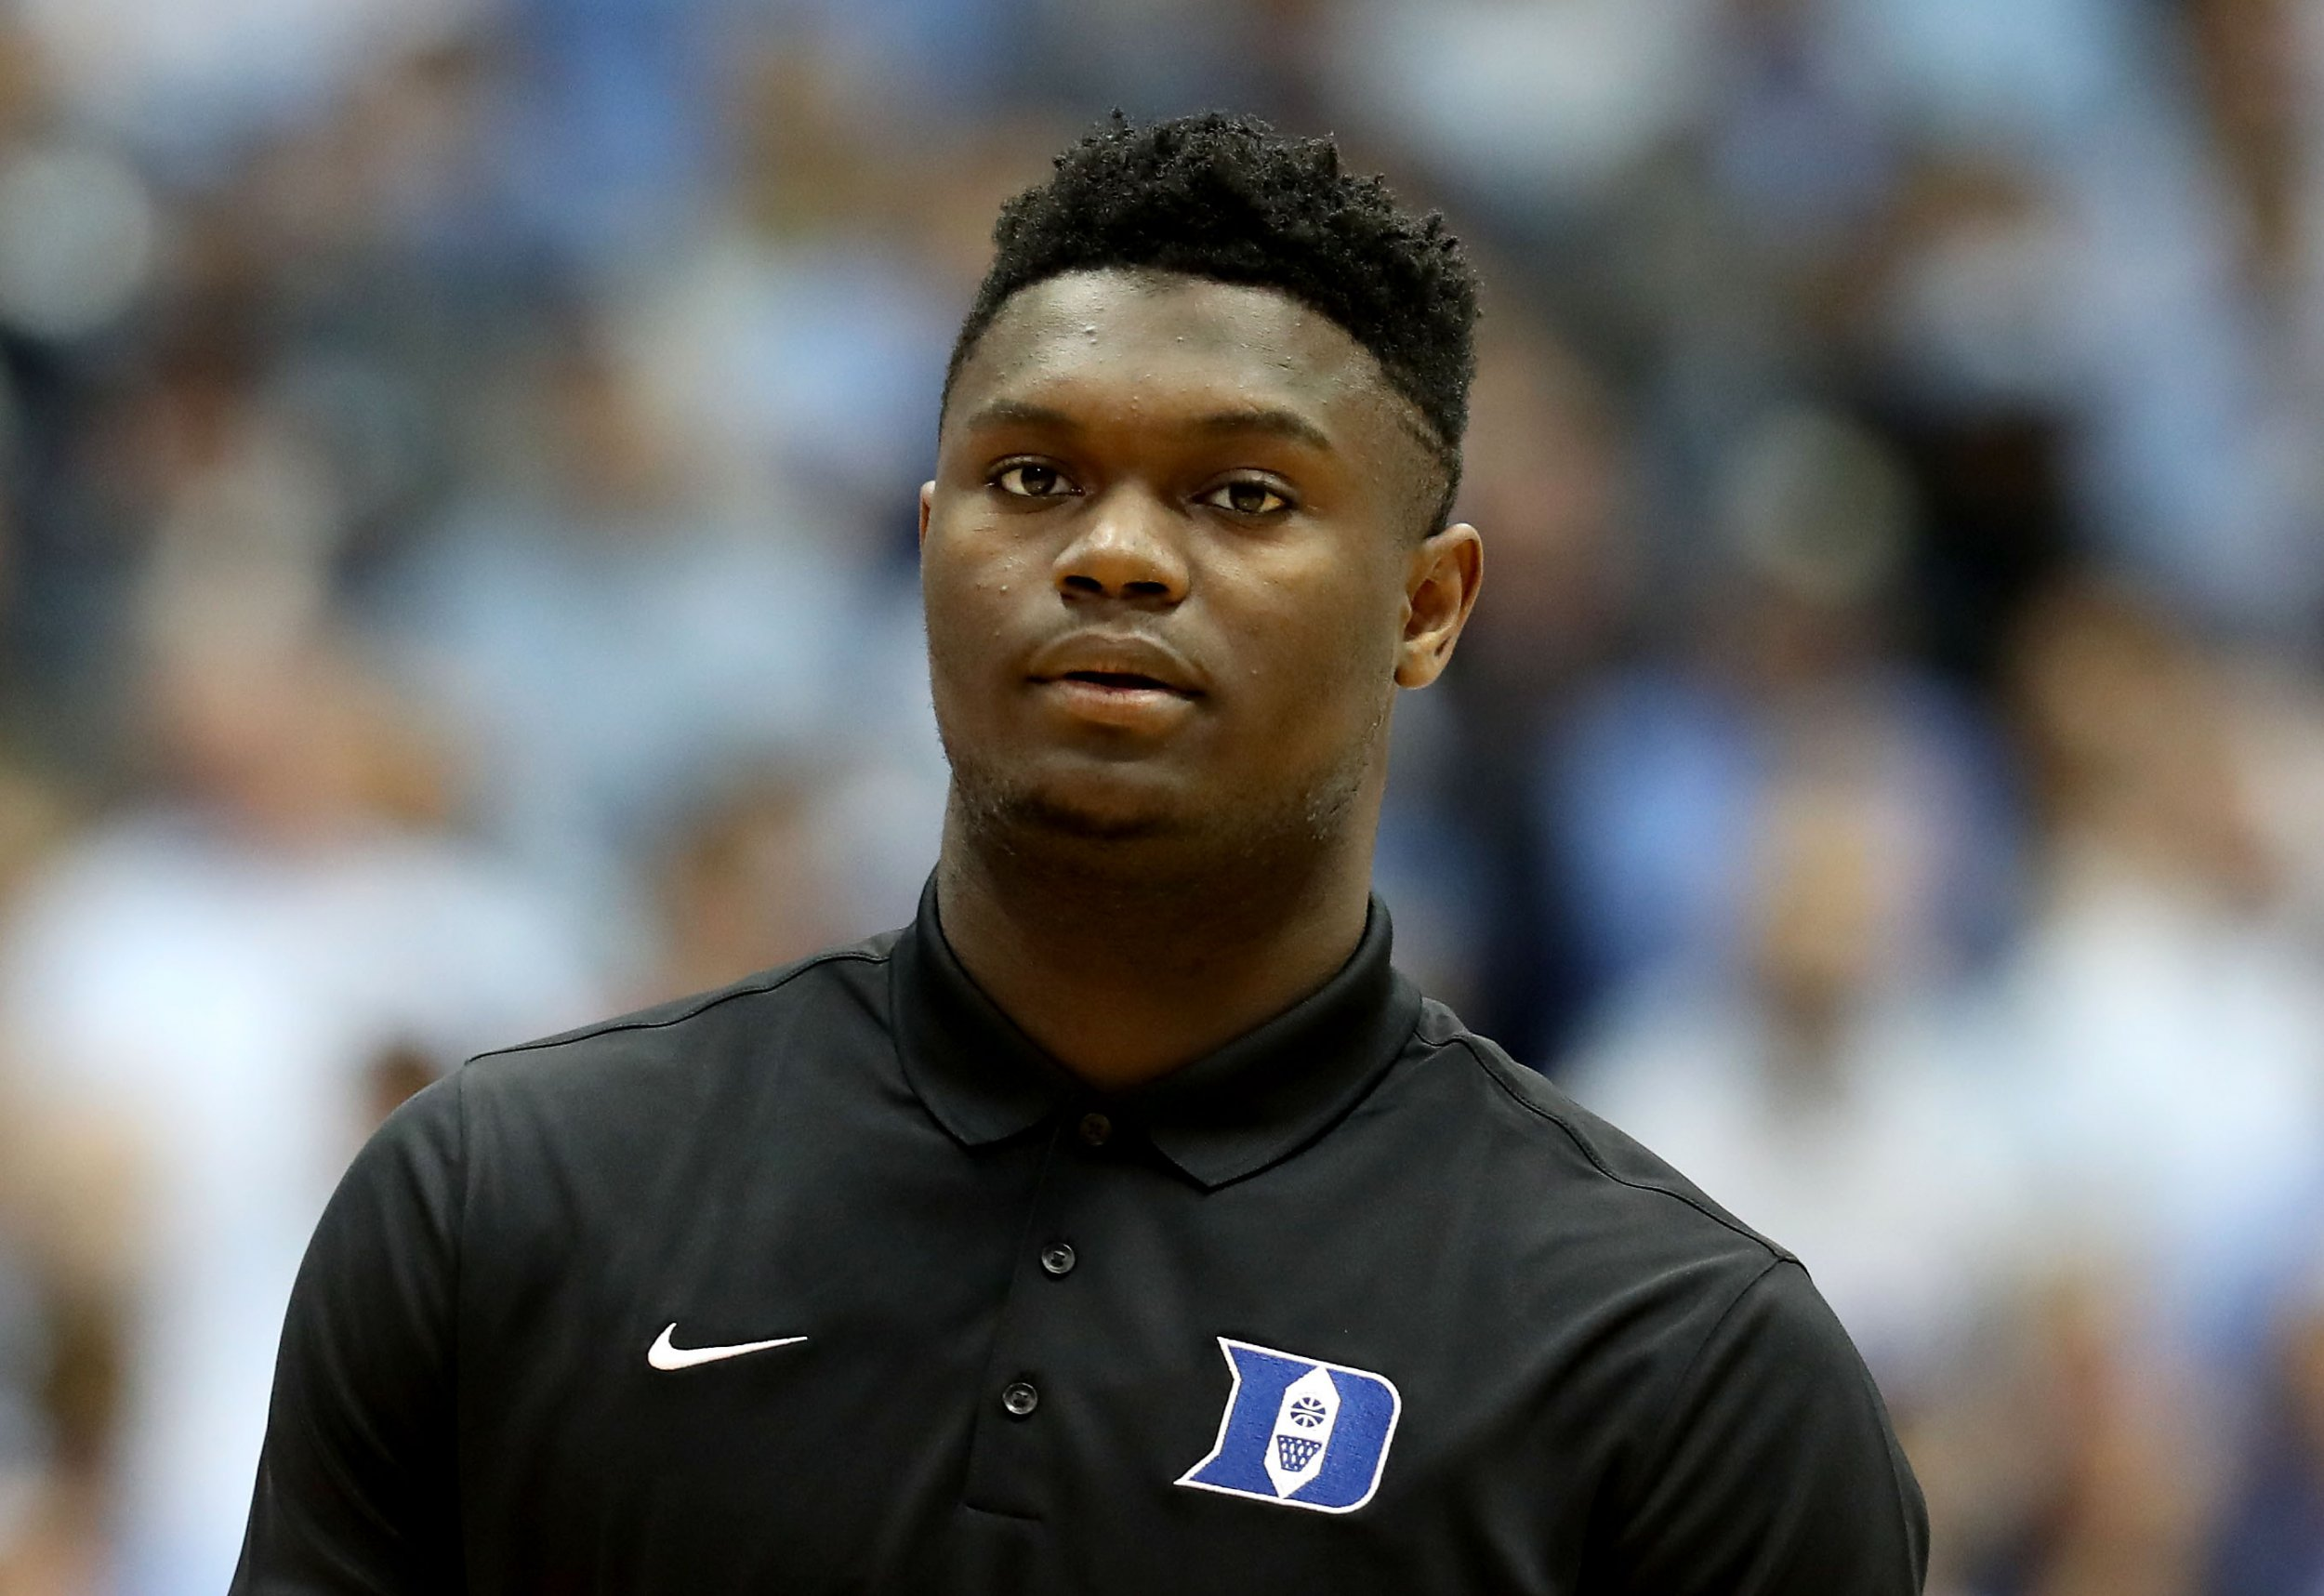 Zion Williamson, Duke Blue Devils